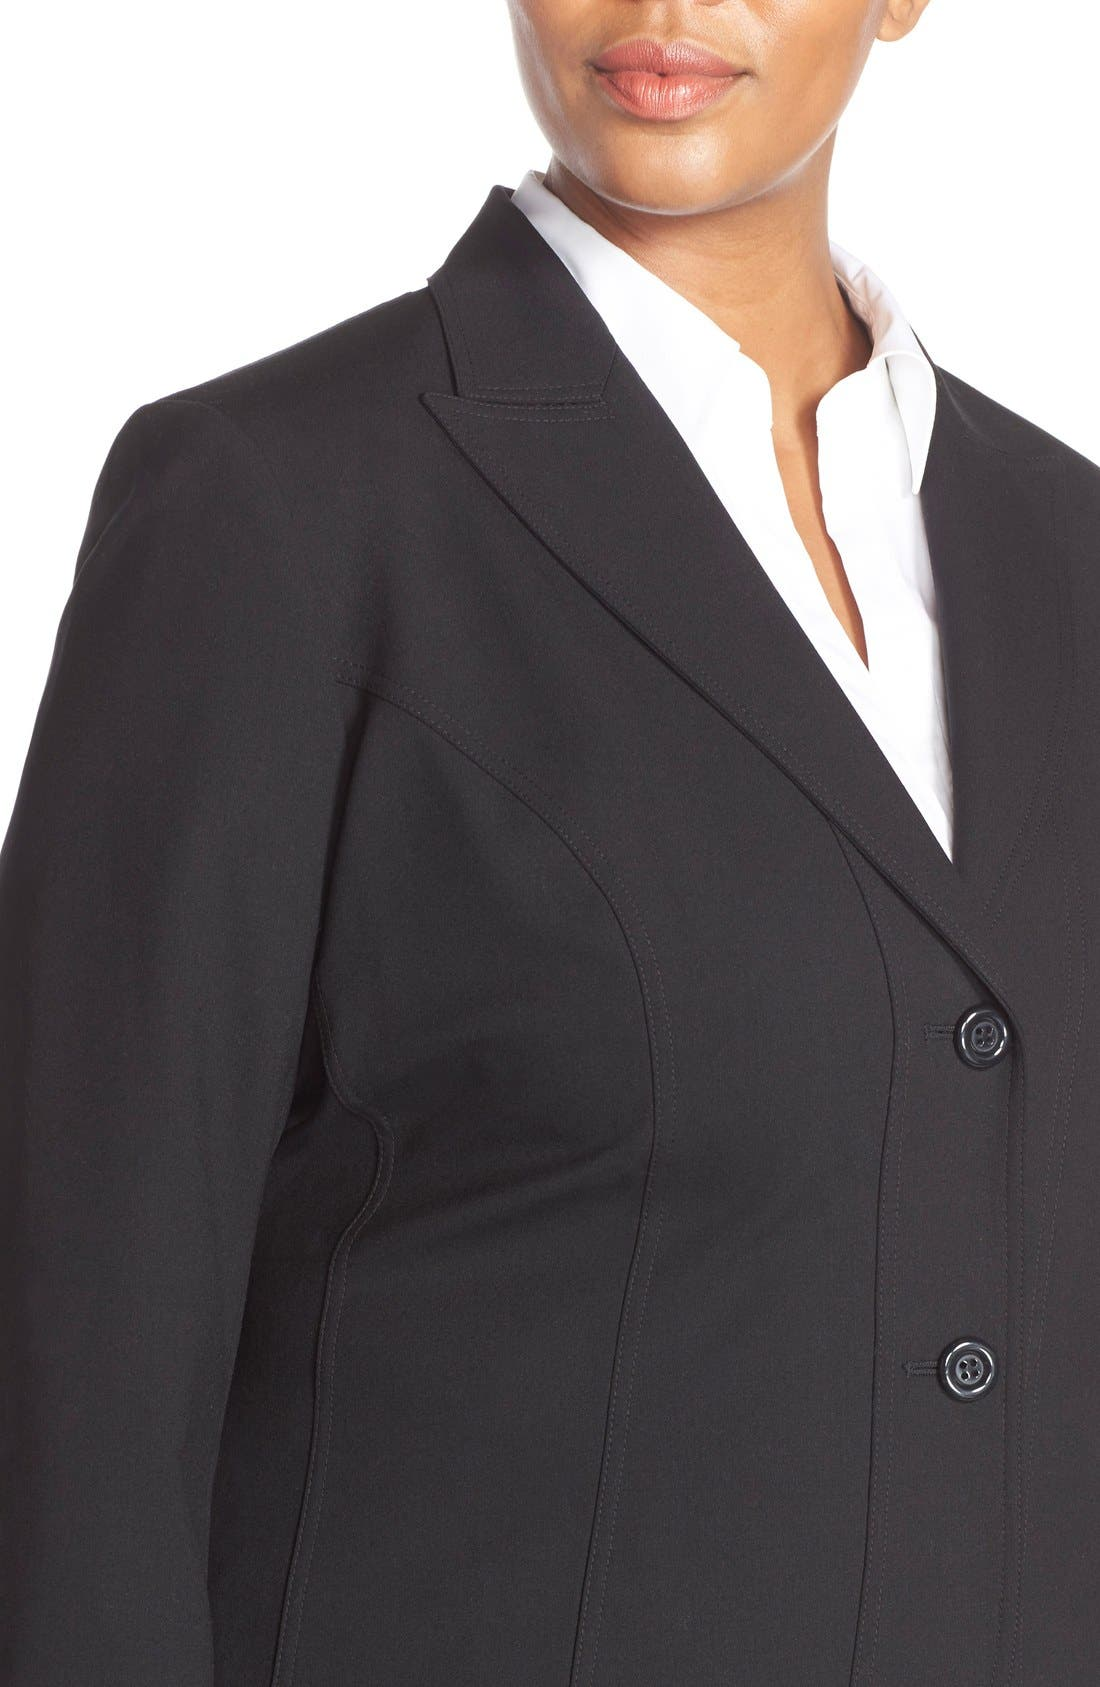 'Gladstone' Stretch Wool Jacket,                             Alternate thumbnail 4, color,                             001